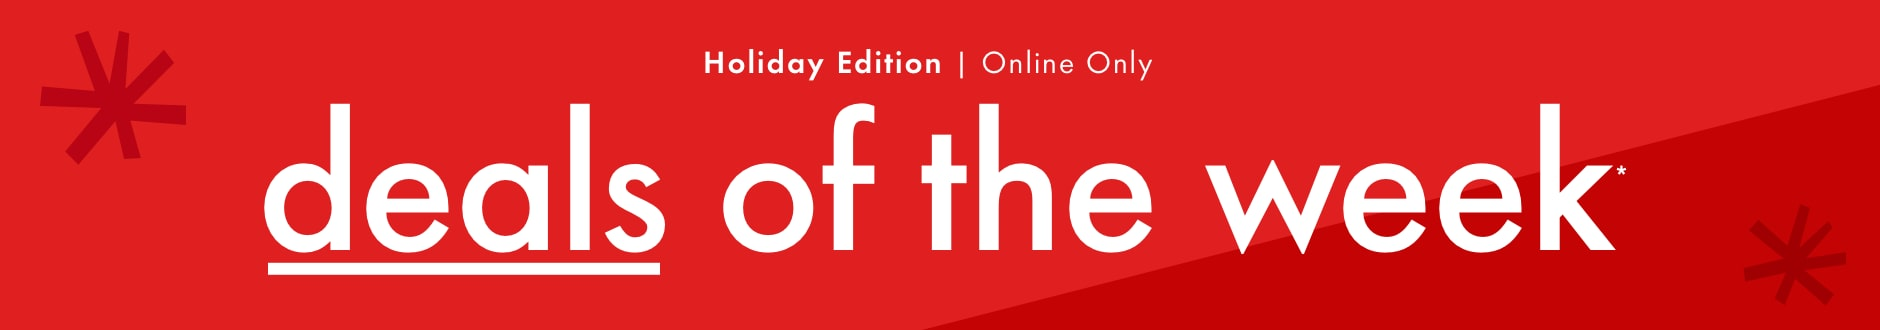 deals of the week - the holiday edition